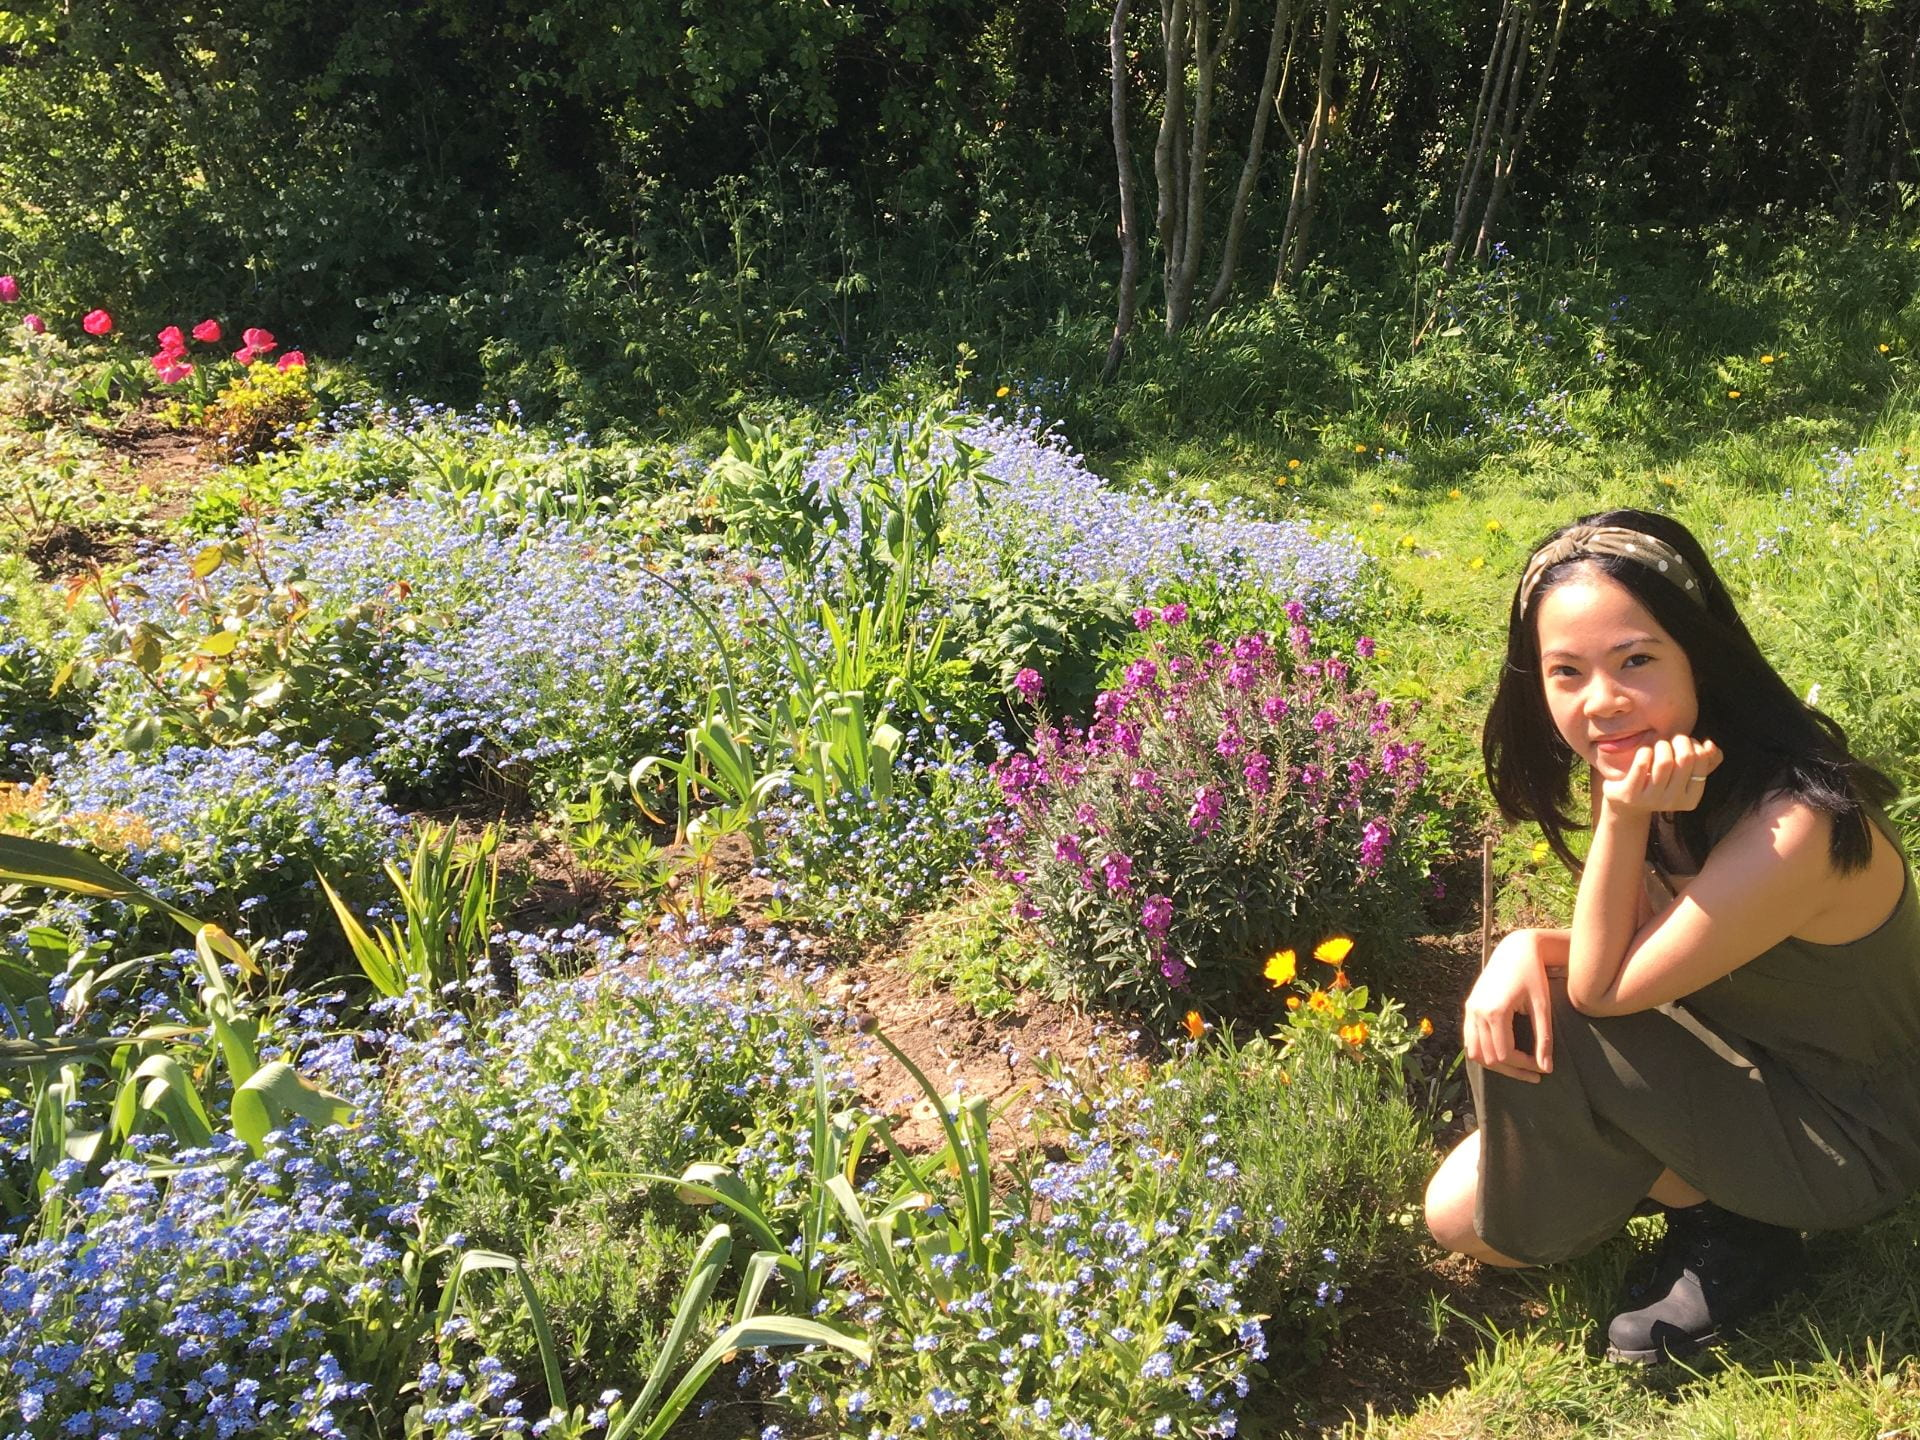 A girl smiling whilst sat in a garden